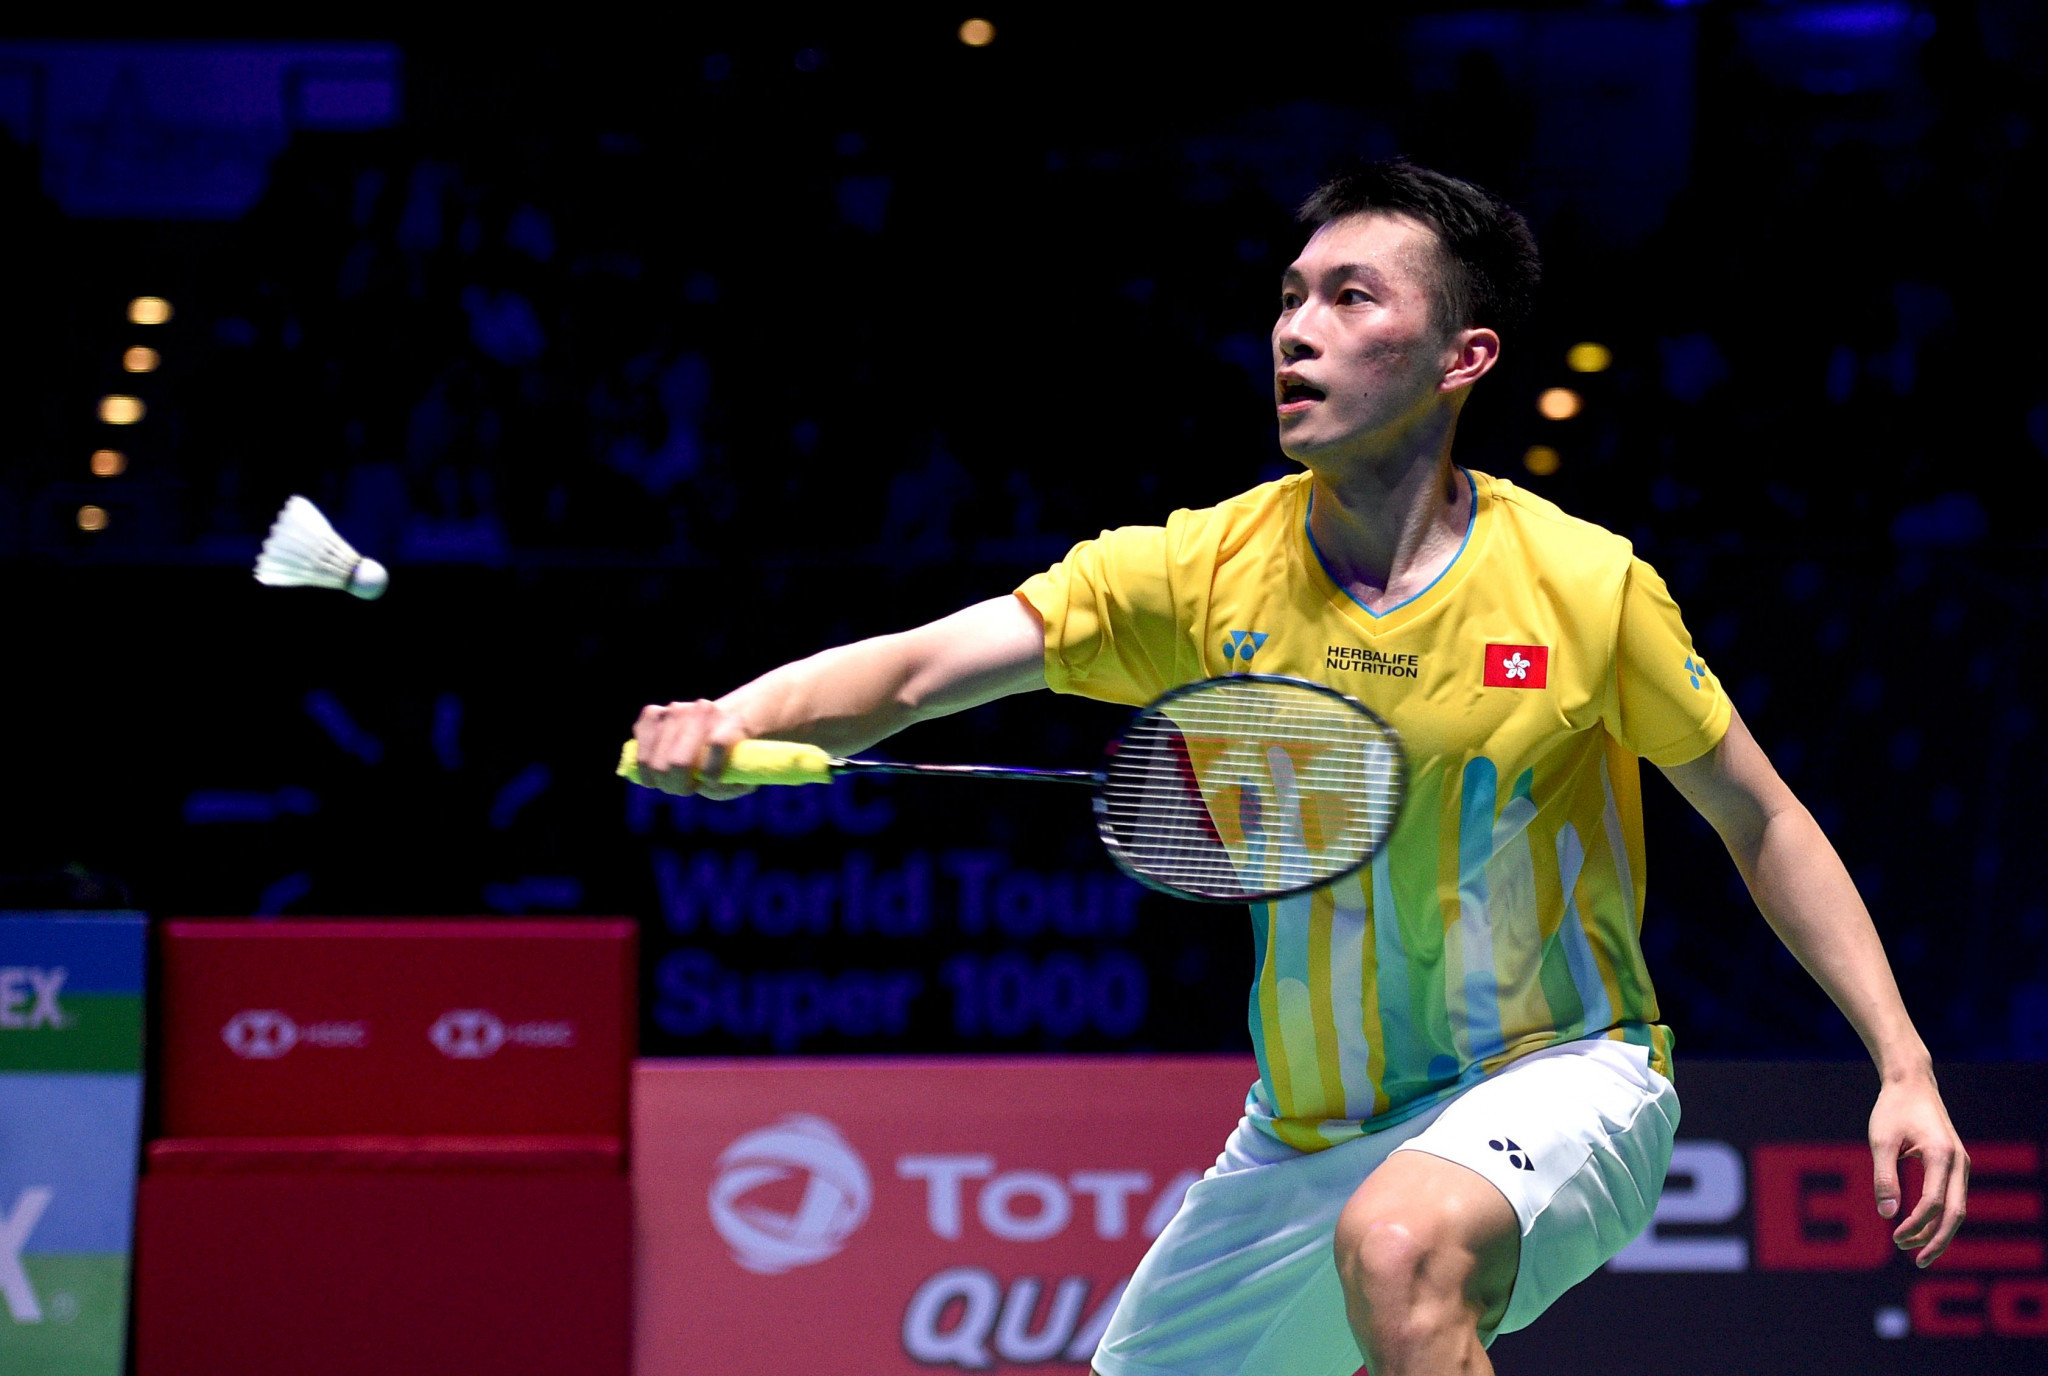 Double Olympic champion Lin and top seed Yamaguchi fall at BWF New Zealand Open